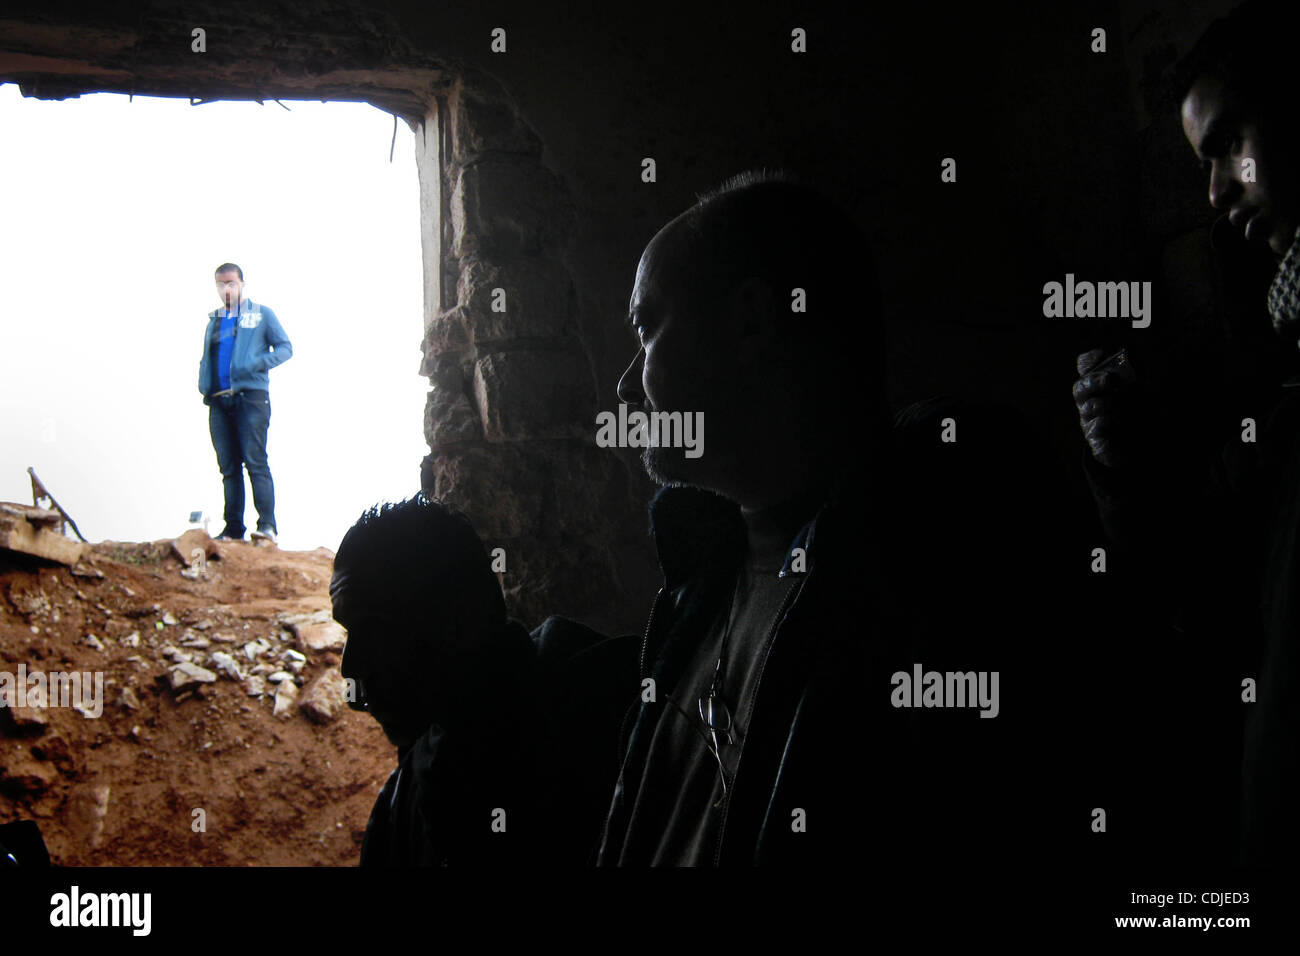 Feb. 24, 2011 - In one of the palaces of Gadafi civilians walk around an underground bunker exploring an area that - Stock Image